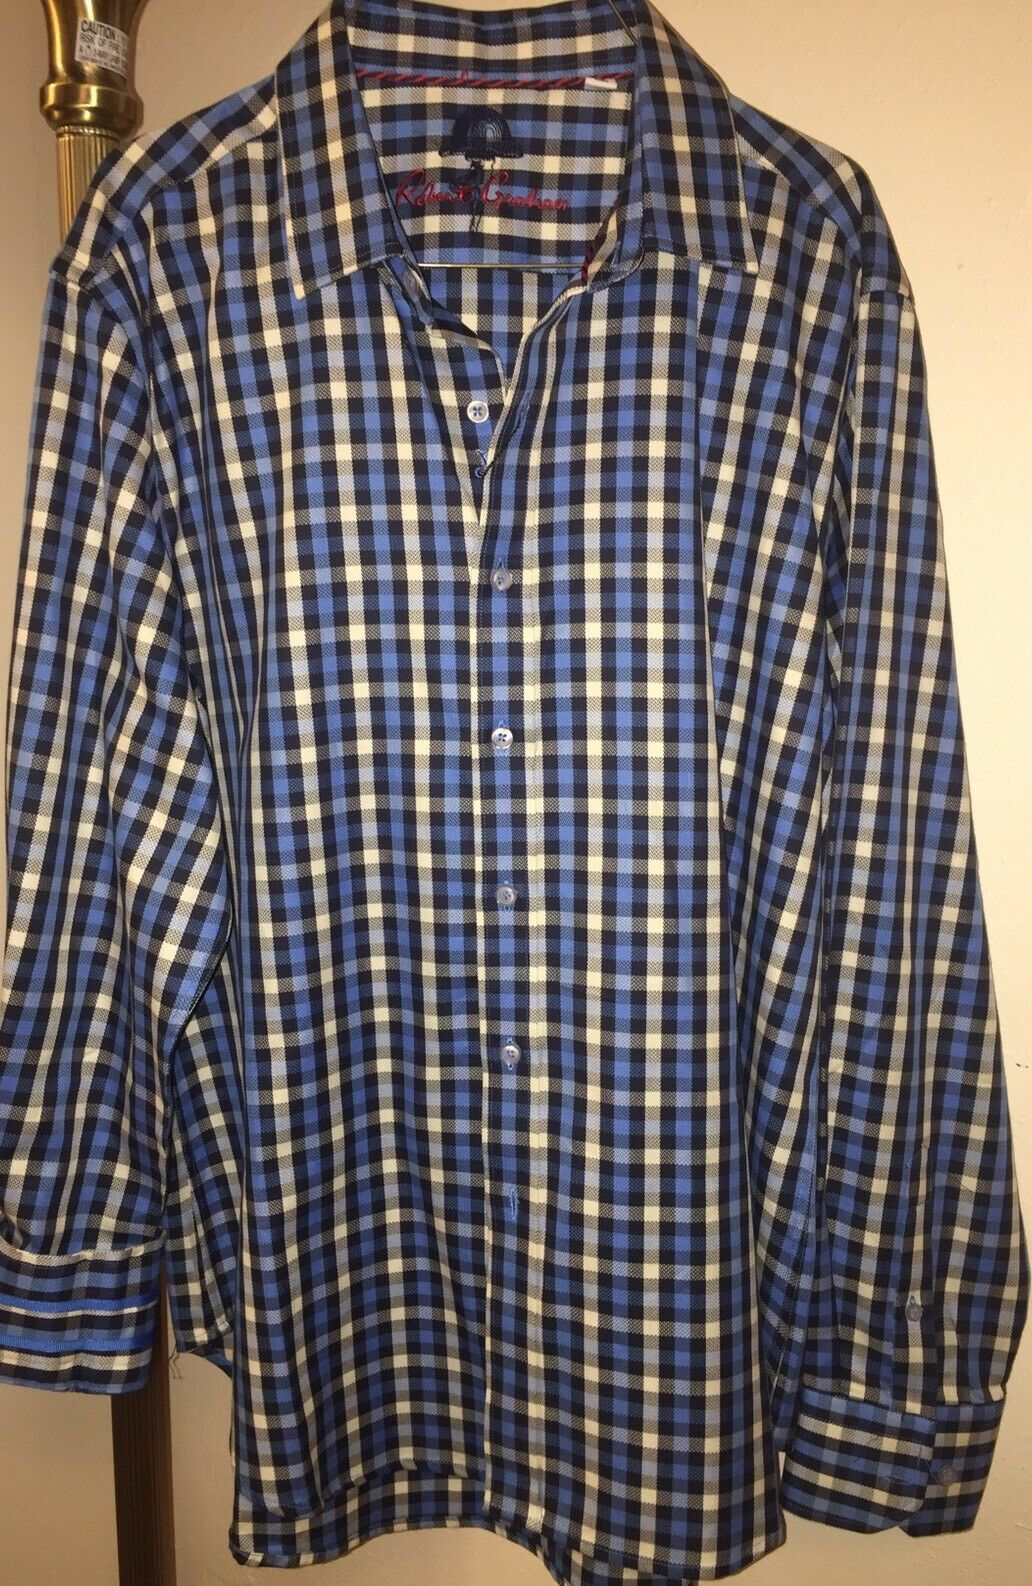 NWT Men's  Robert Graham Norton Folgate Button Down Shirt Sz L Classic Fit  40% off